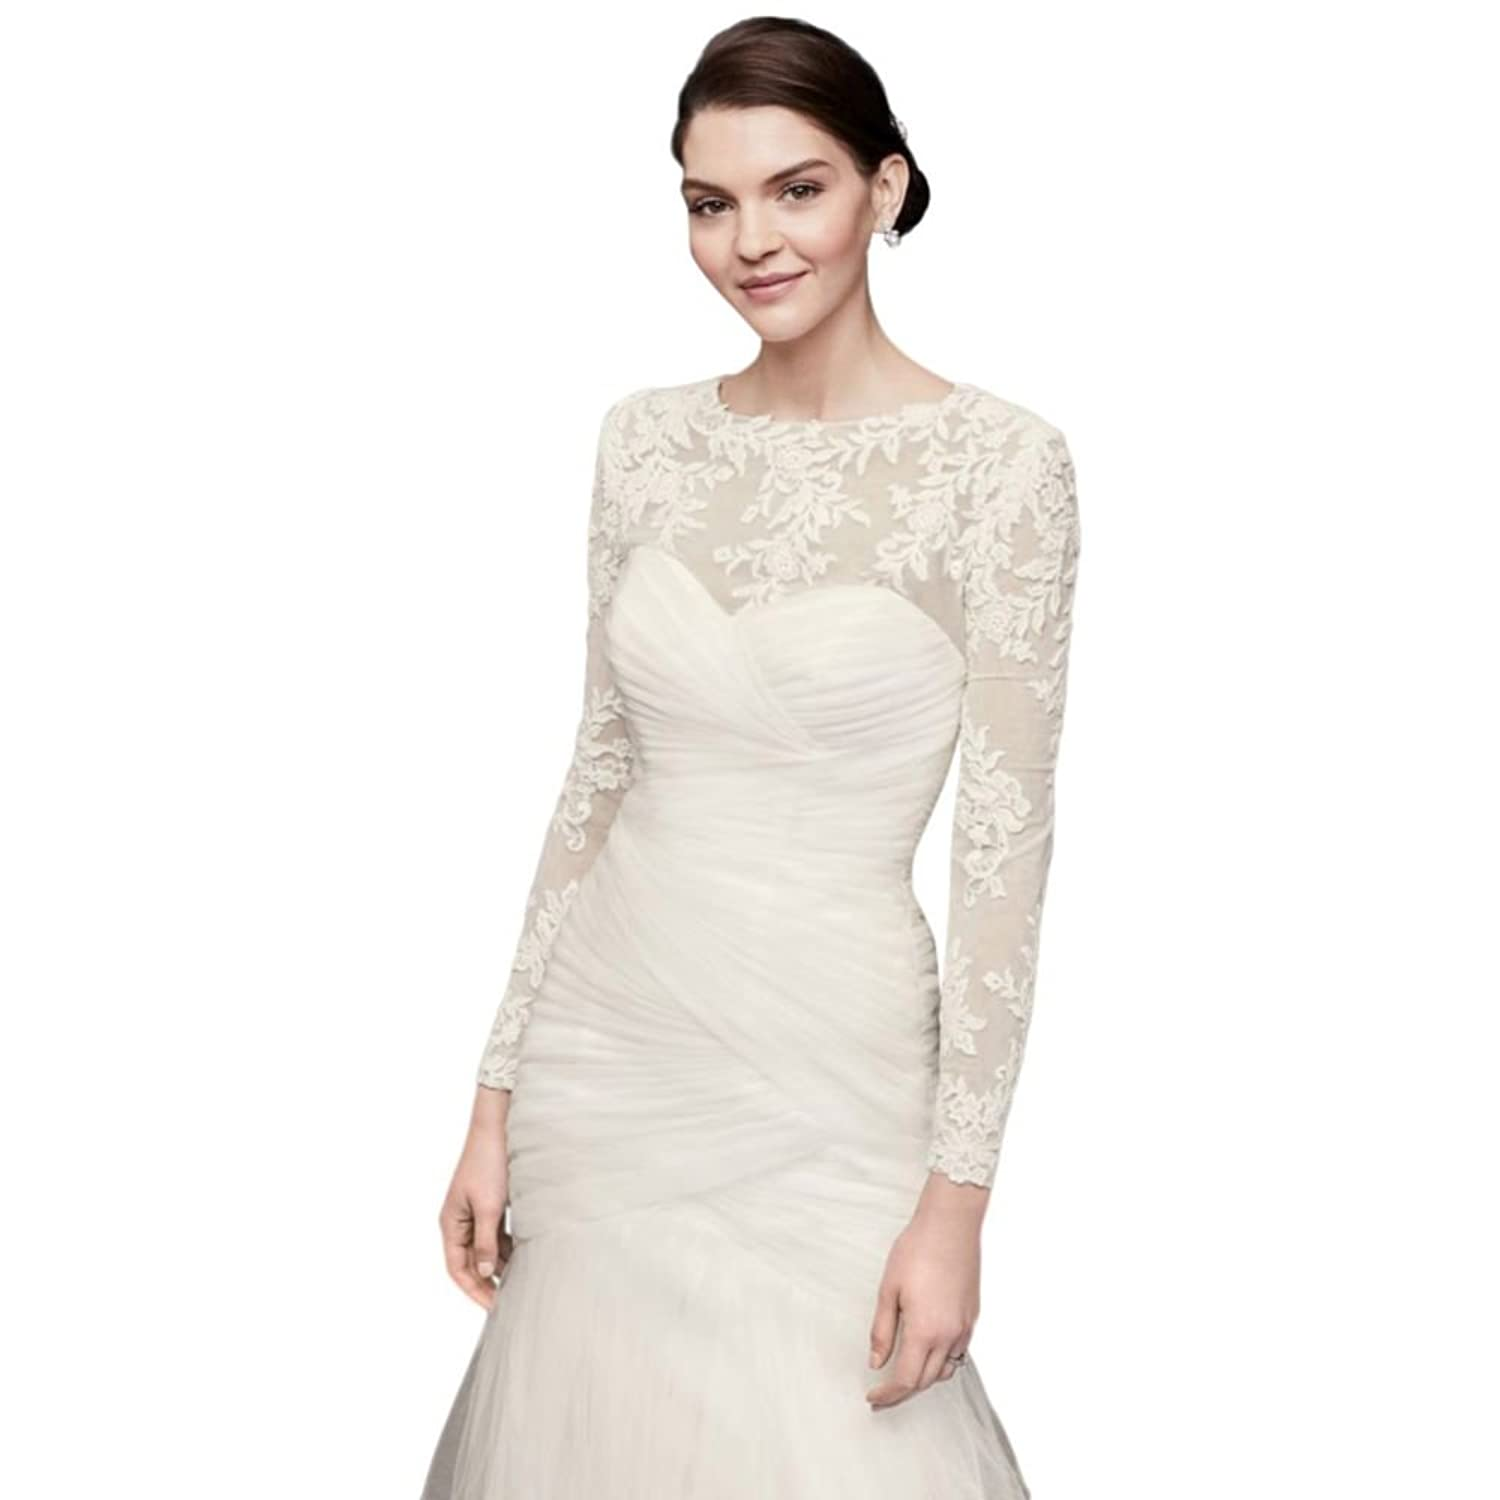 Davids Bridal Embroidered Lace Long Sleeve Dress Topper